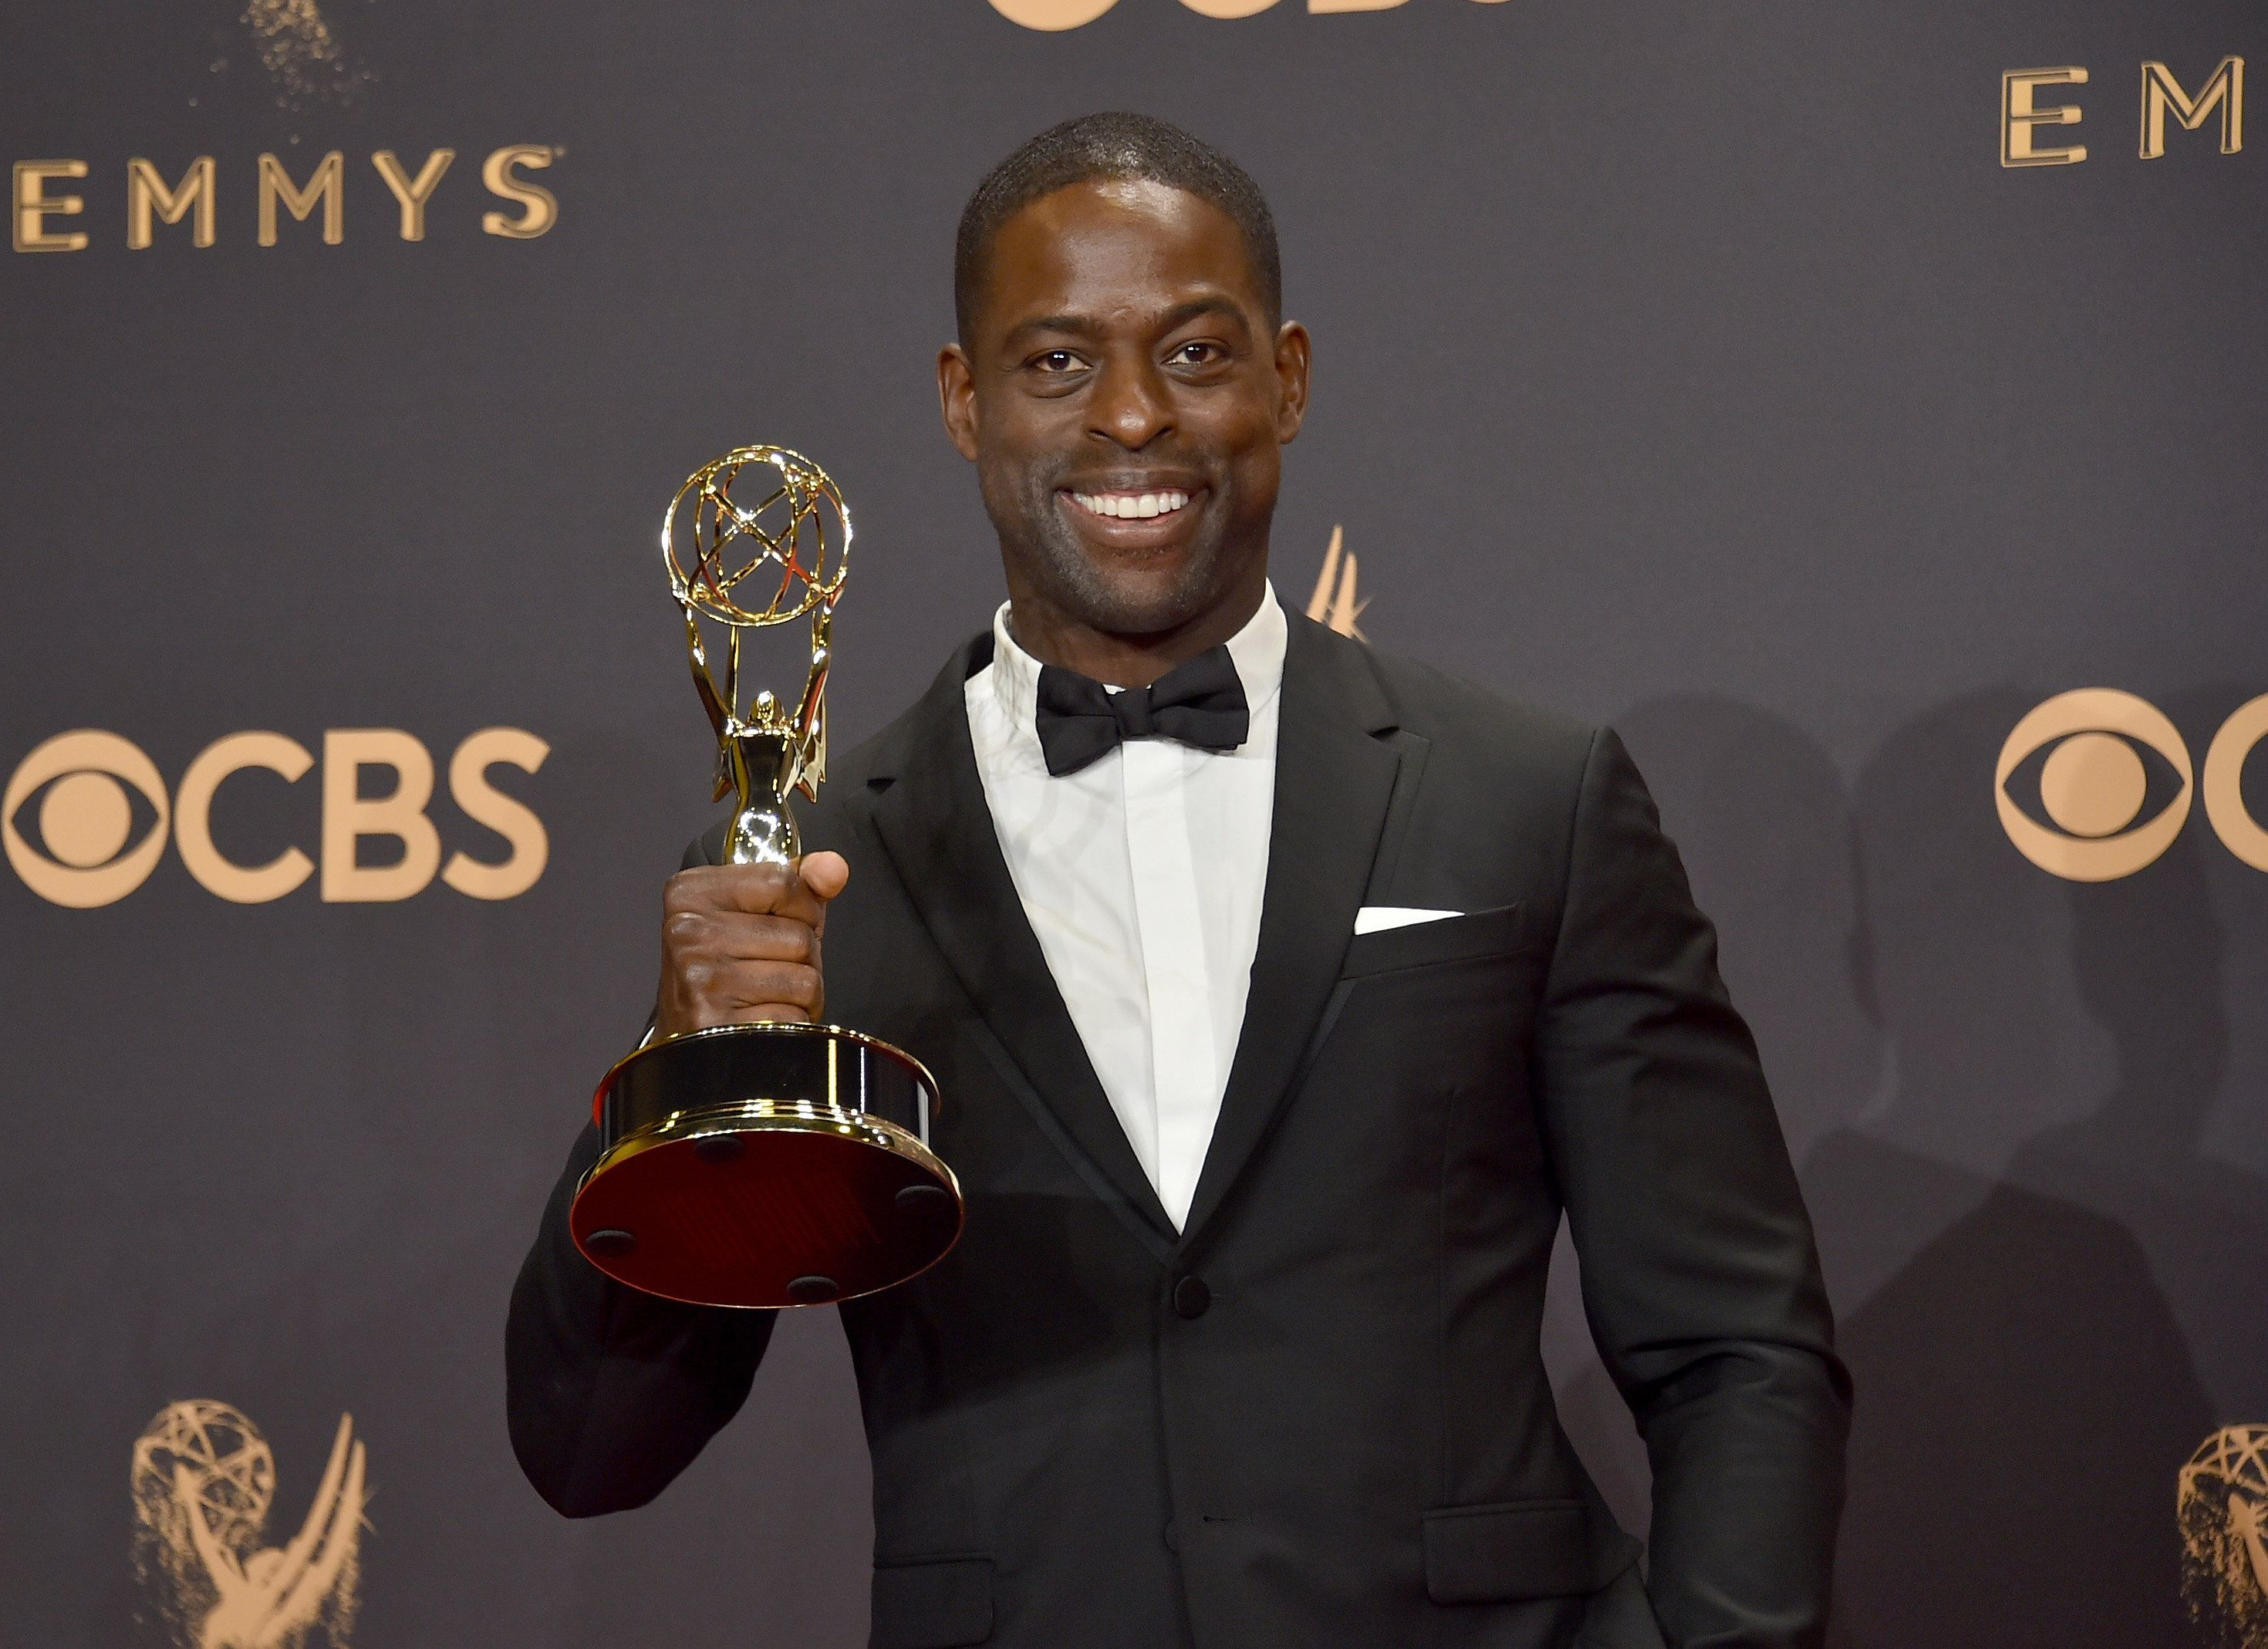 LOS ANGELES, CA - SEPTEMBER 17:  Actor Sterling K. Brown, winner of Outstanding Lead Actor in a Drama Series for 'This Is Us', poses in the press room during the 69th Annual Primetime Emmy Awards at Microsoft Theater on September 17, 2017 in Los Angeles, California.  (Photo by Alberto E. Rodriguez/Getty Images)